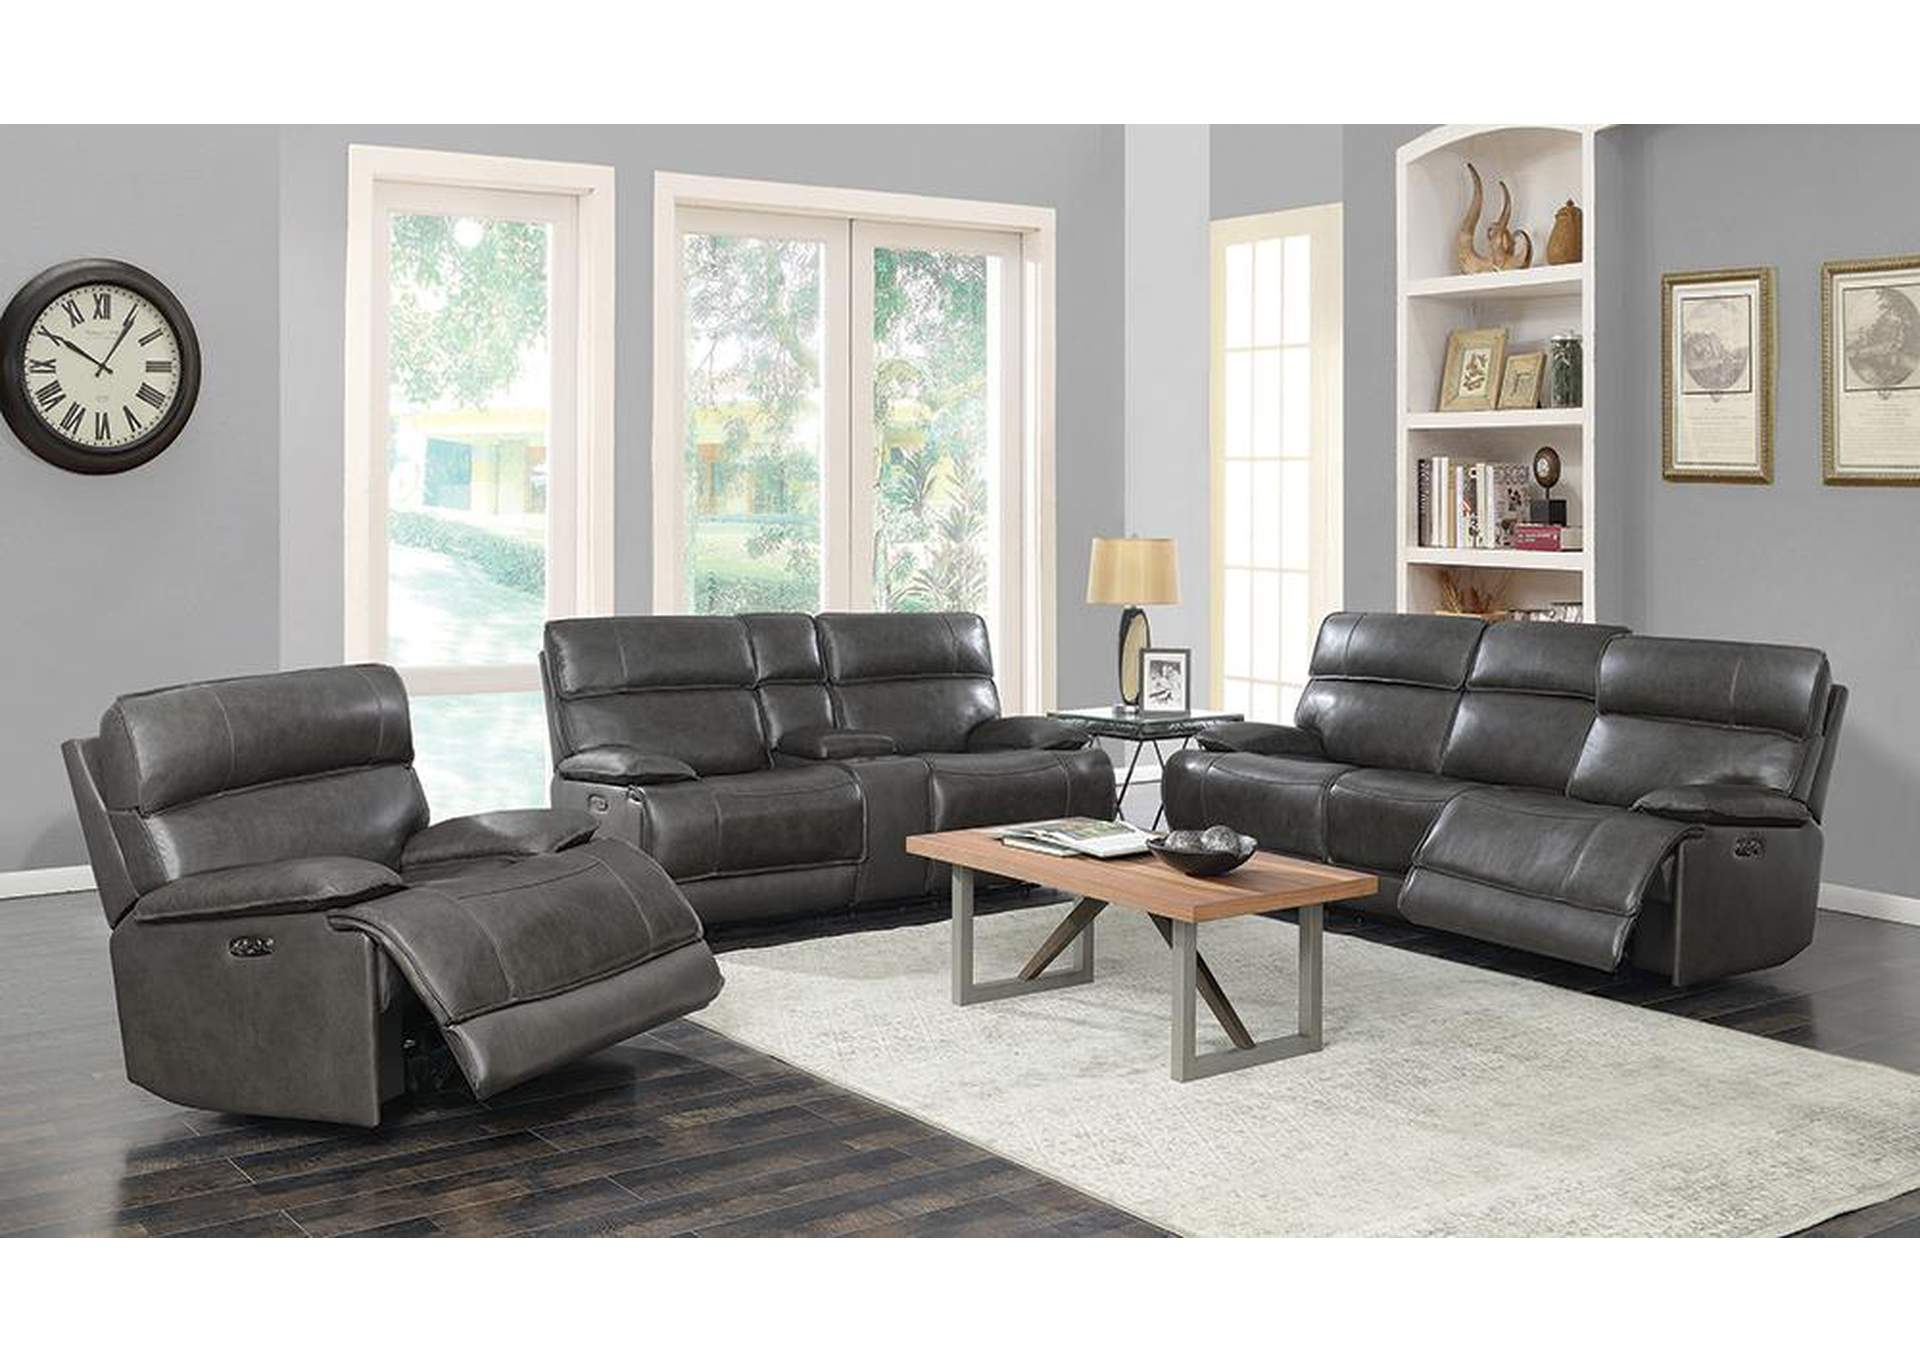 Chicago Standford Casual Charcoal Power Sofa,Coaster Furniture